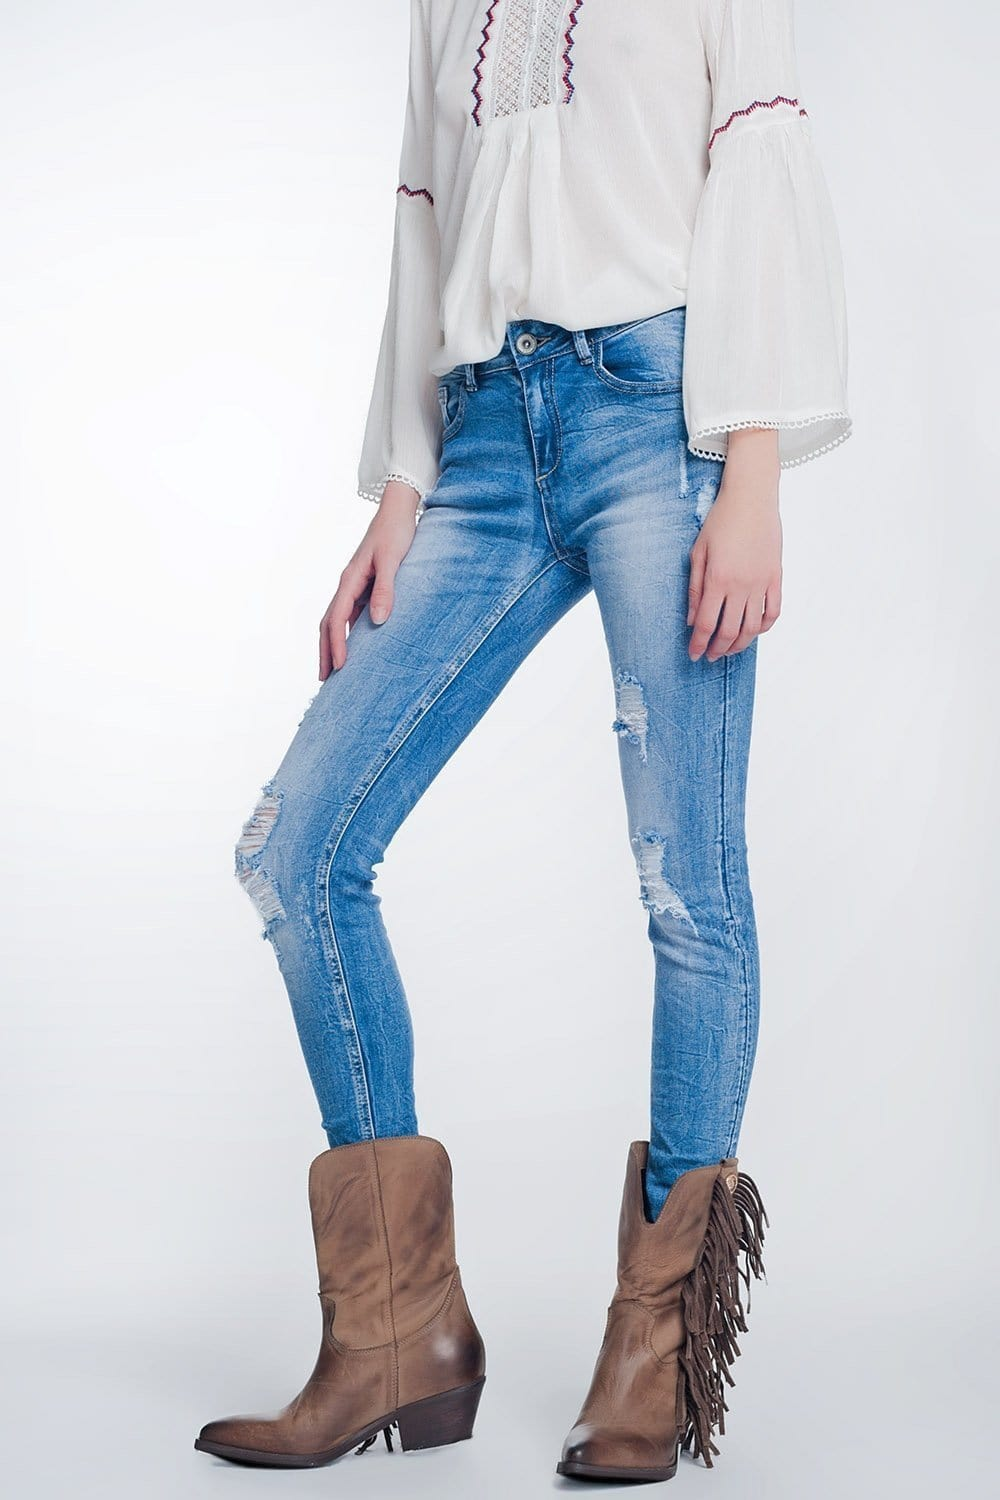 Q2 super skinny jeans in vintage mid wash blue with heavy rips